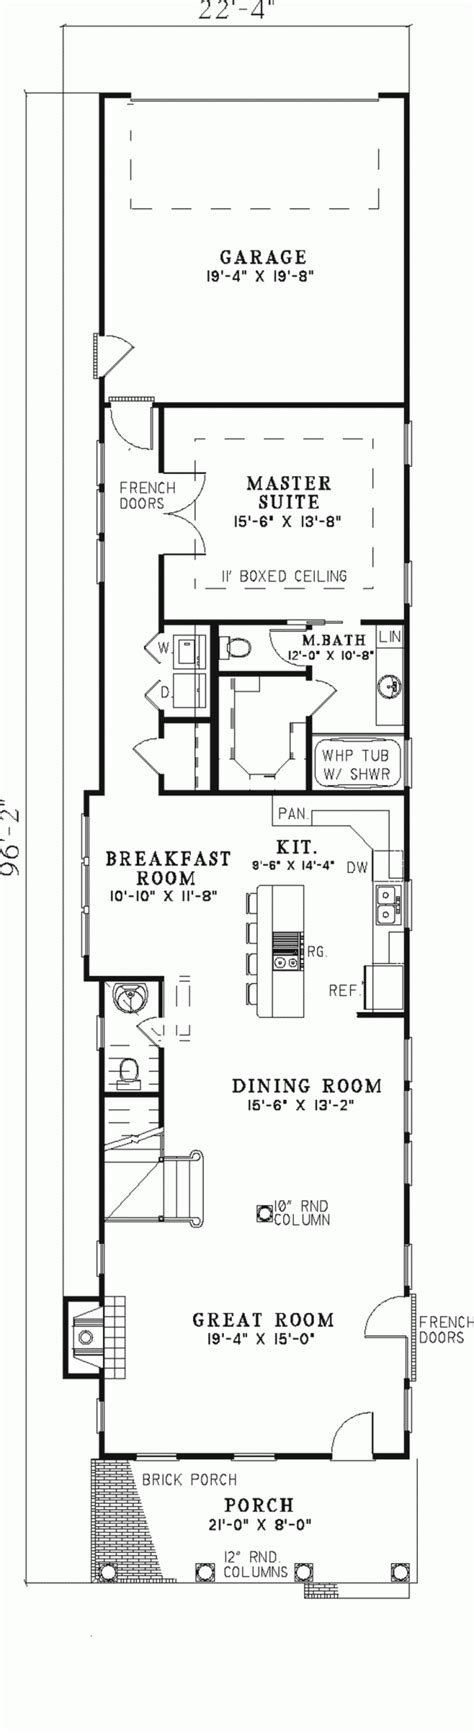 rectangular 2 story house plans rectangle house plans numberedtype